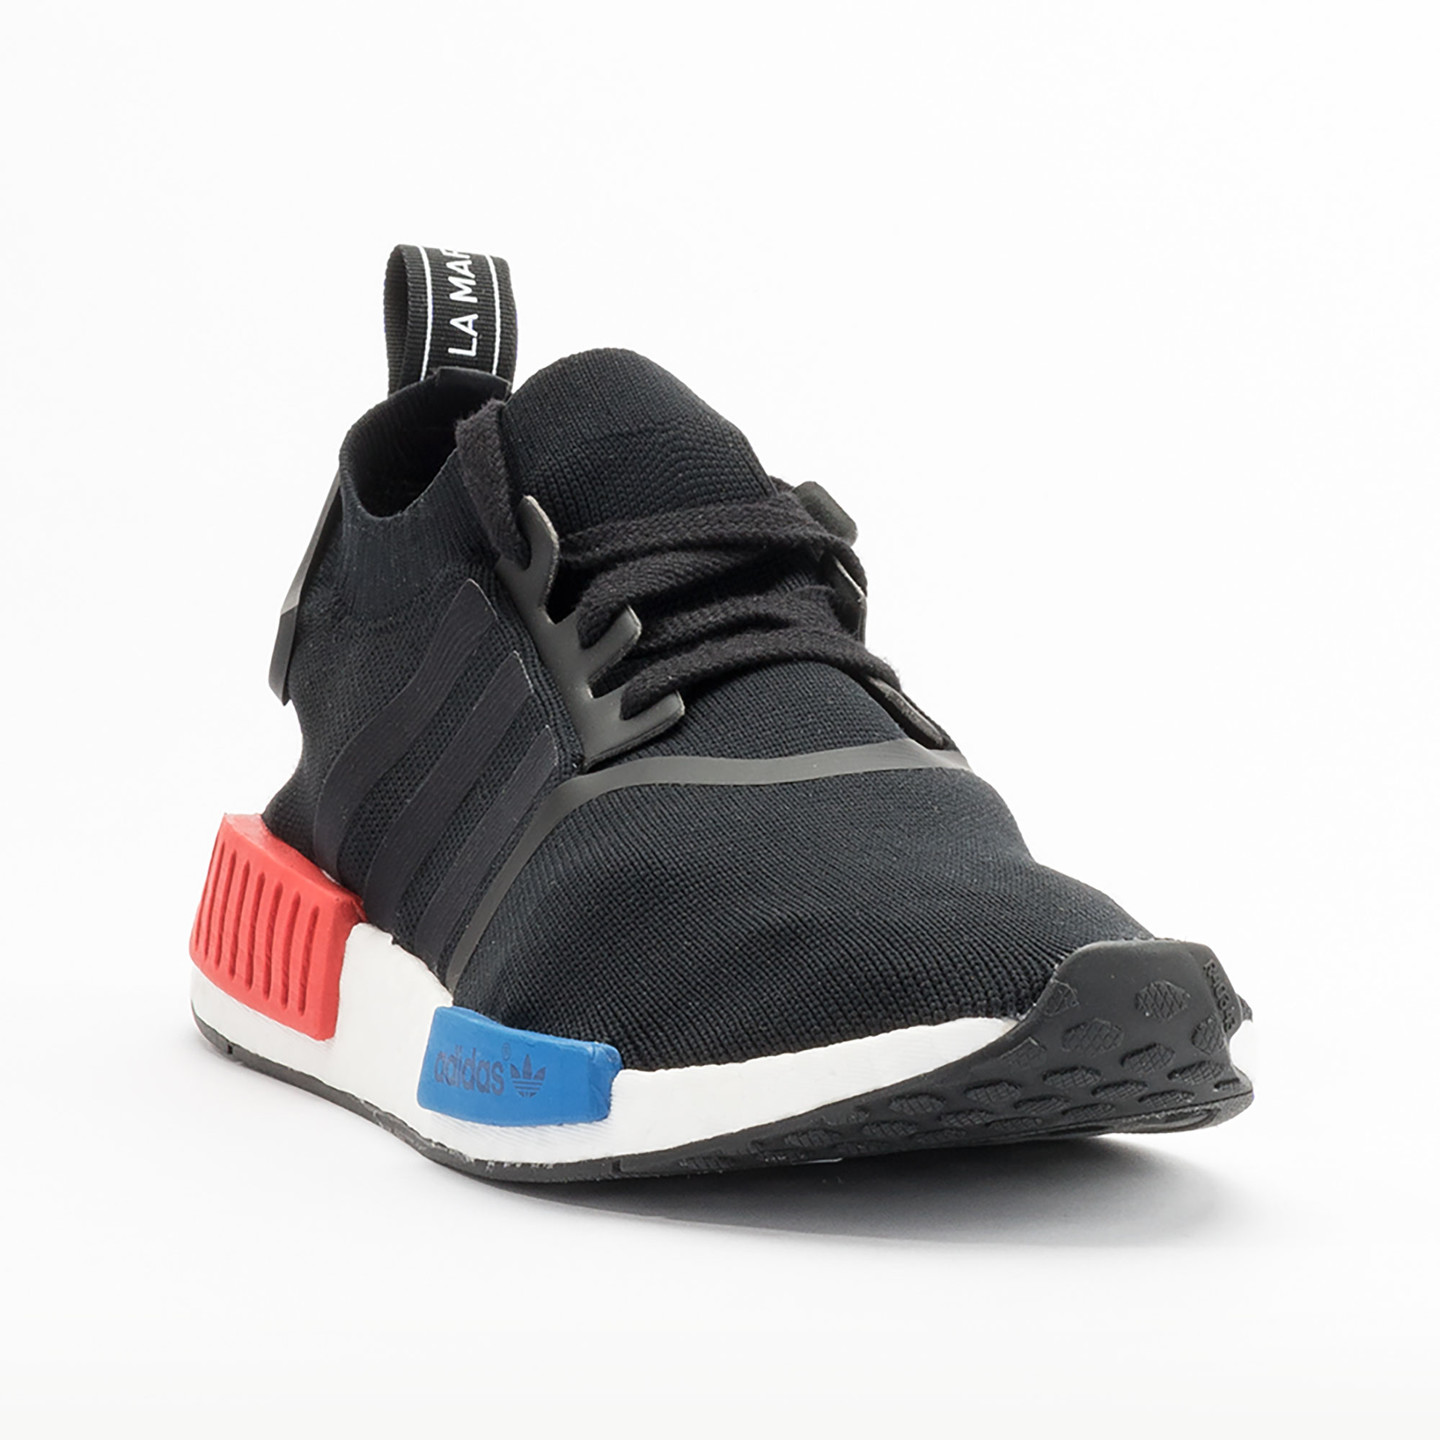 Adidas NMD Runner PK Primeknit Black / Red / Blue / White S79168-37.33